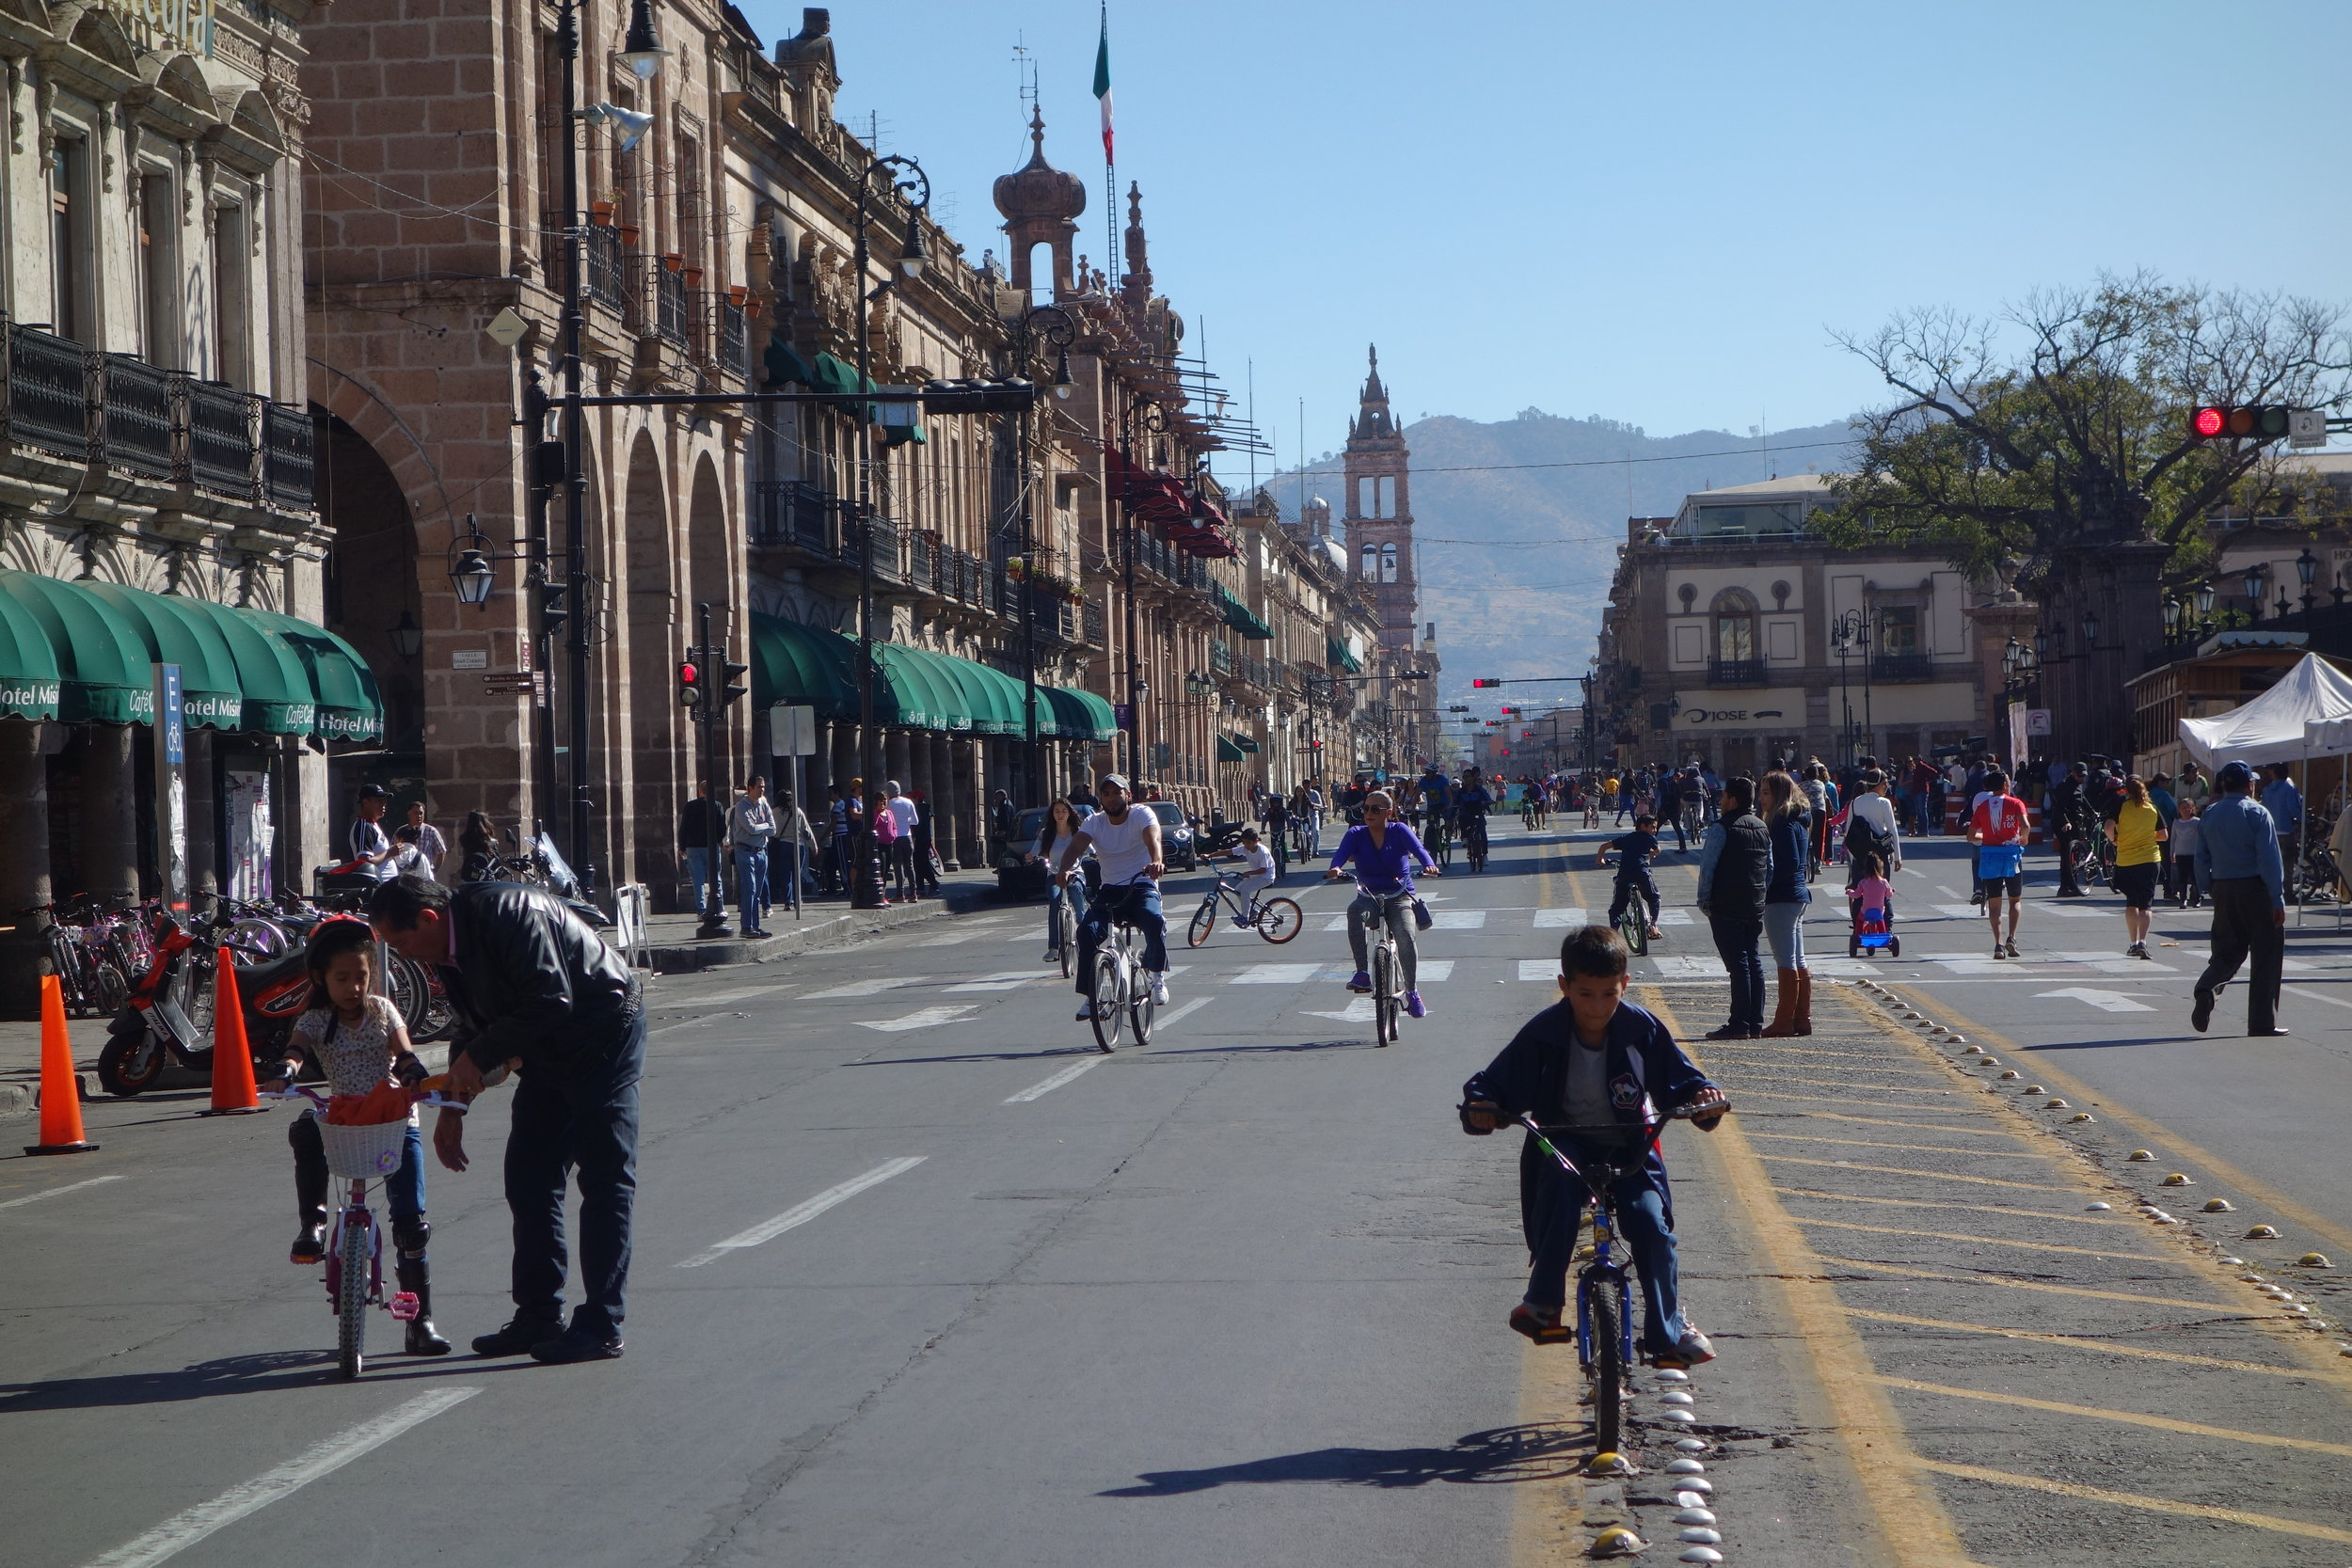 Most of the time I battle traffic, but in Morelia each Sunday the main street is given back to people.